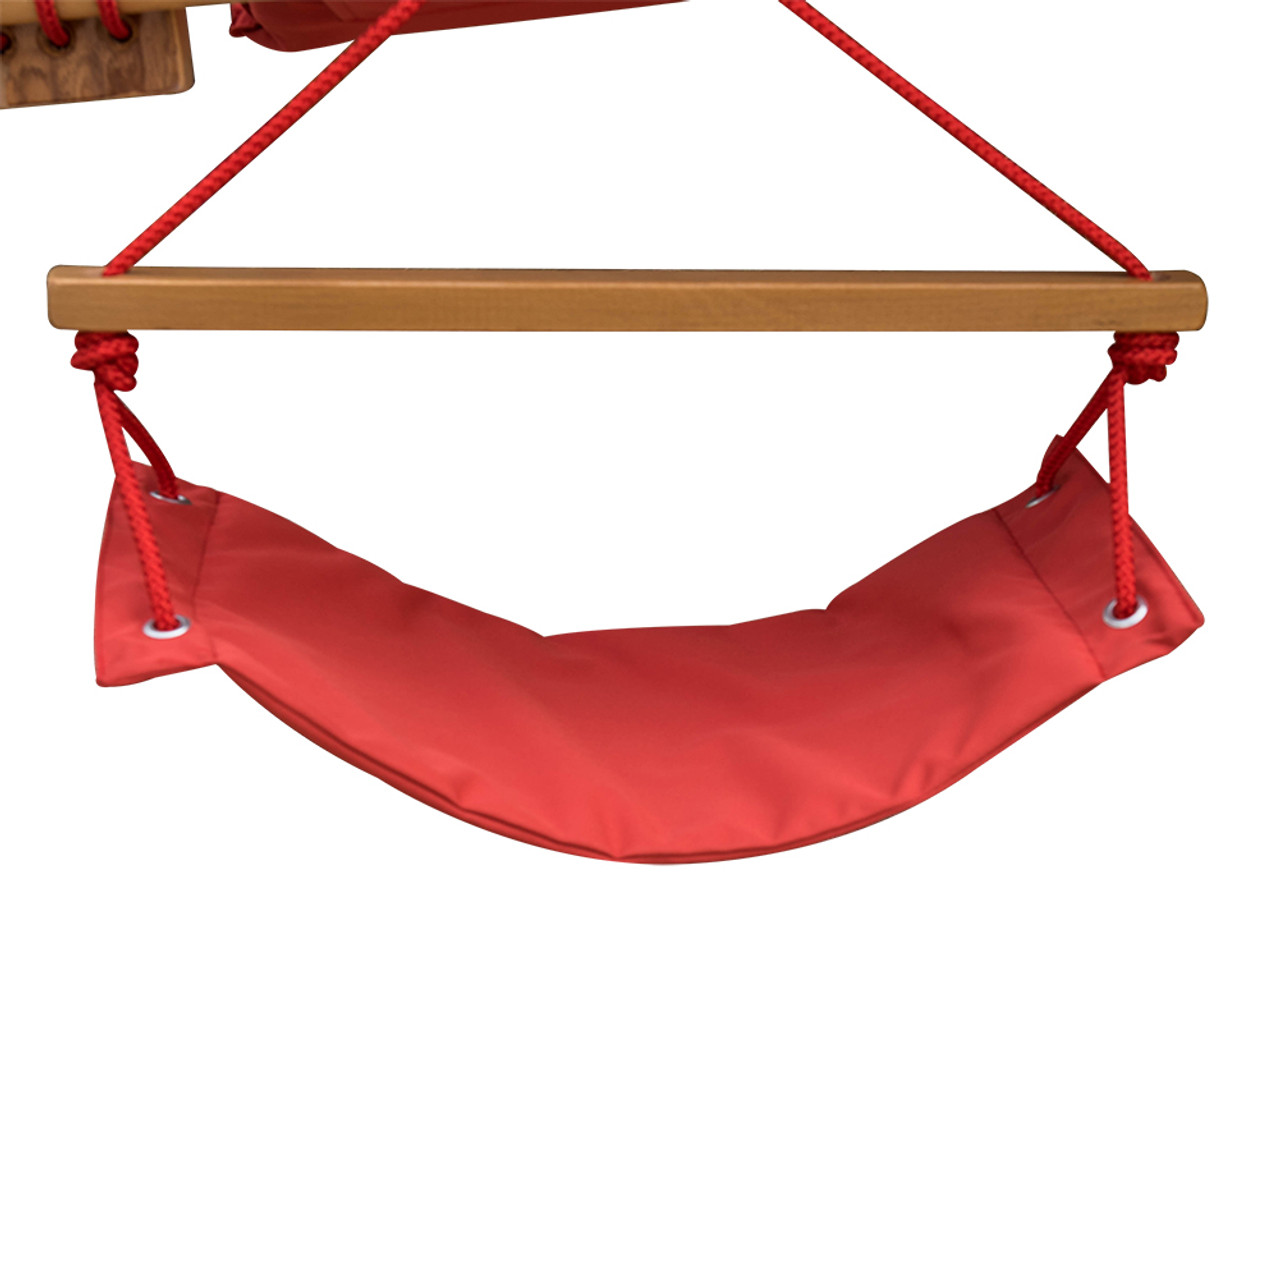 Deluxe Oversized Double Hanging Rope Chair Cotton Padded Swing Chair Wood Arc Hammock Seat With Cup Holder Footrest Hardware Capacity 450 Lbs Red